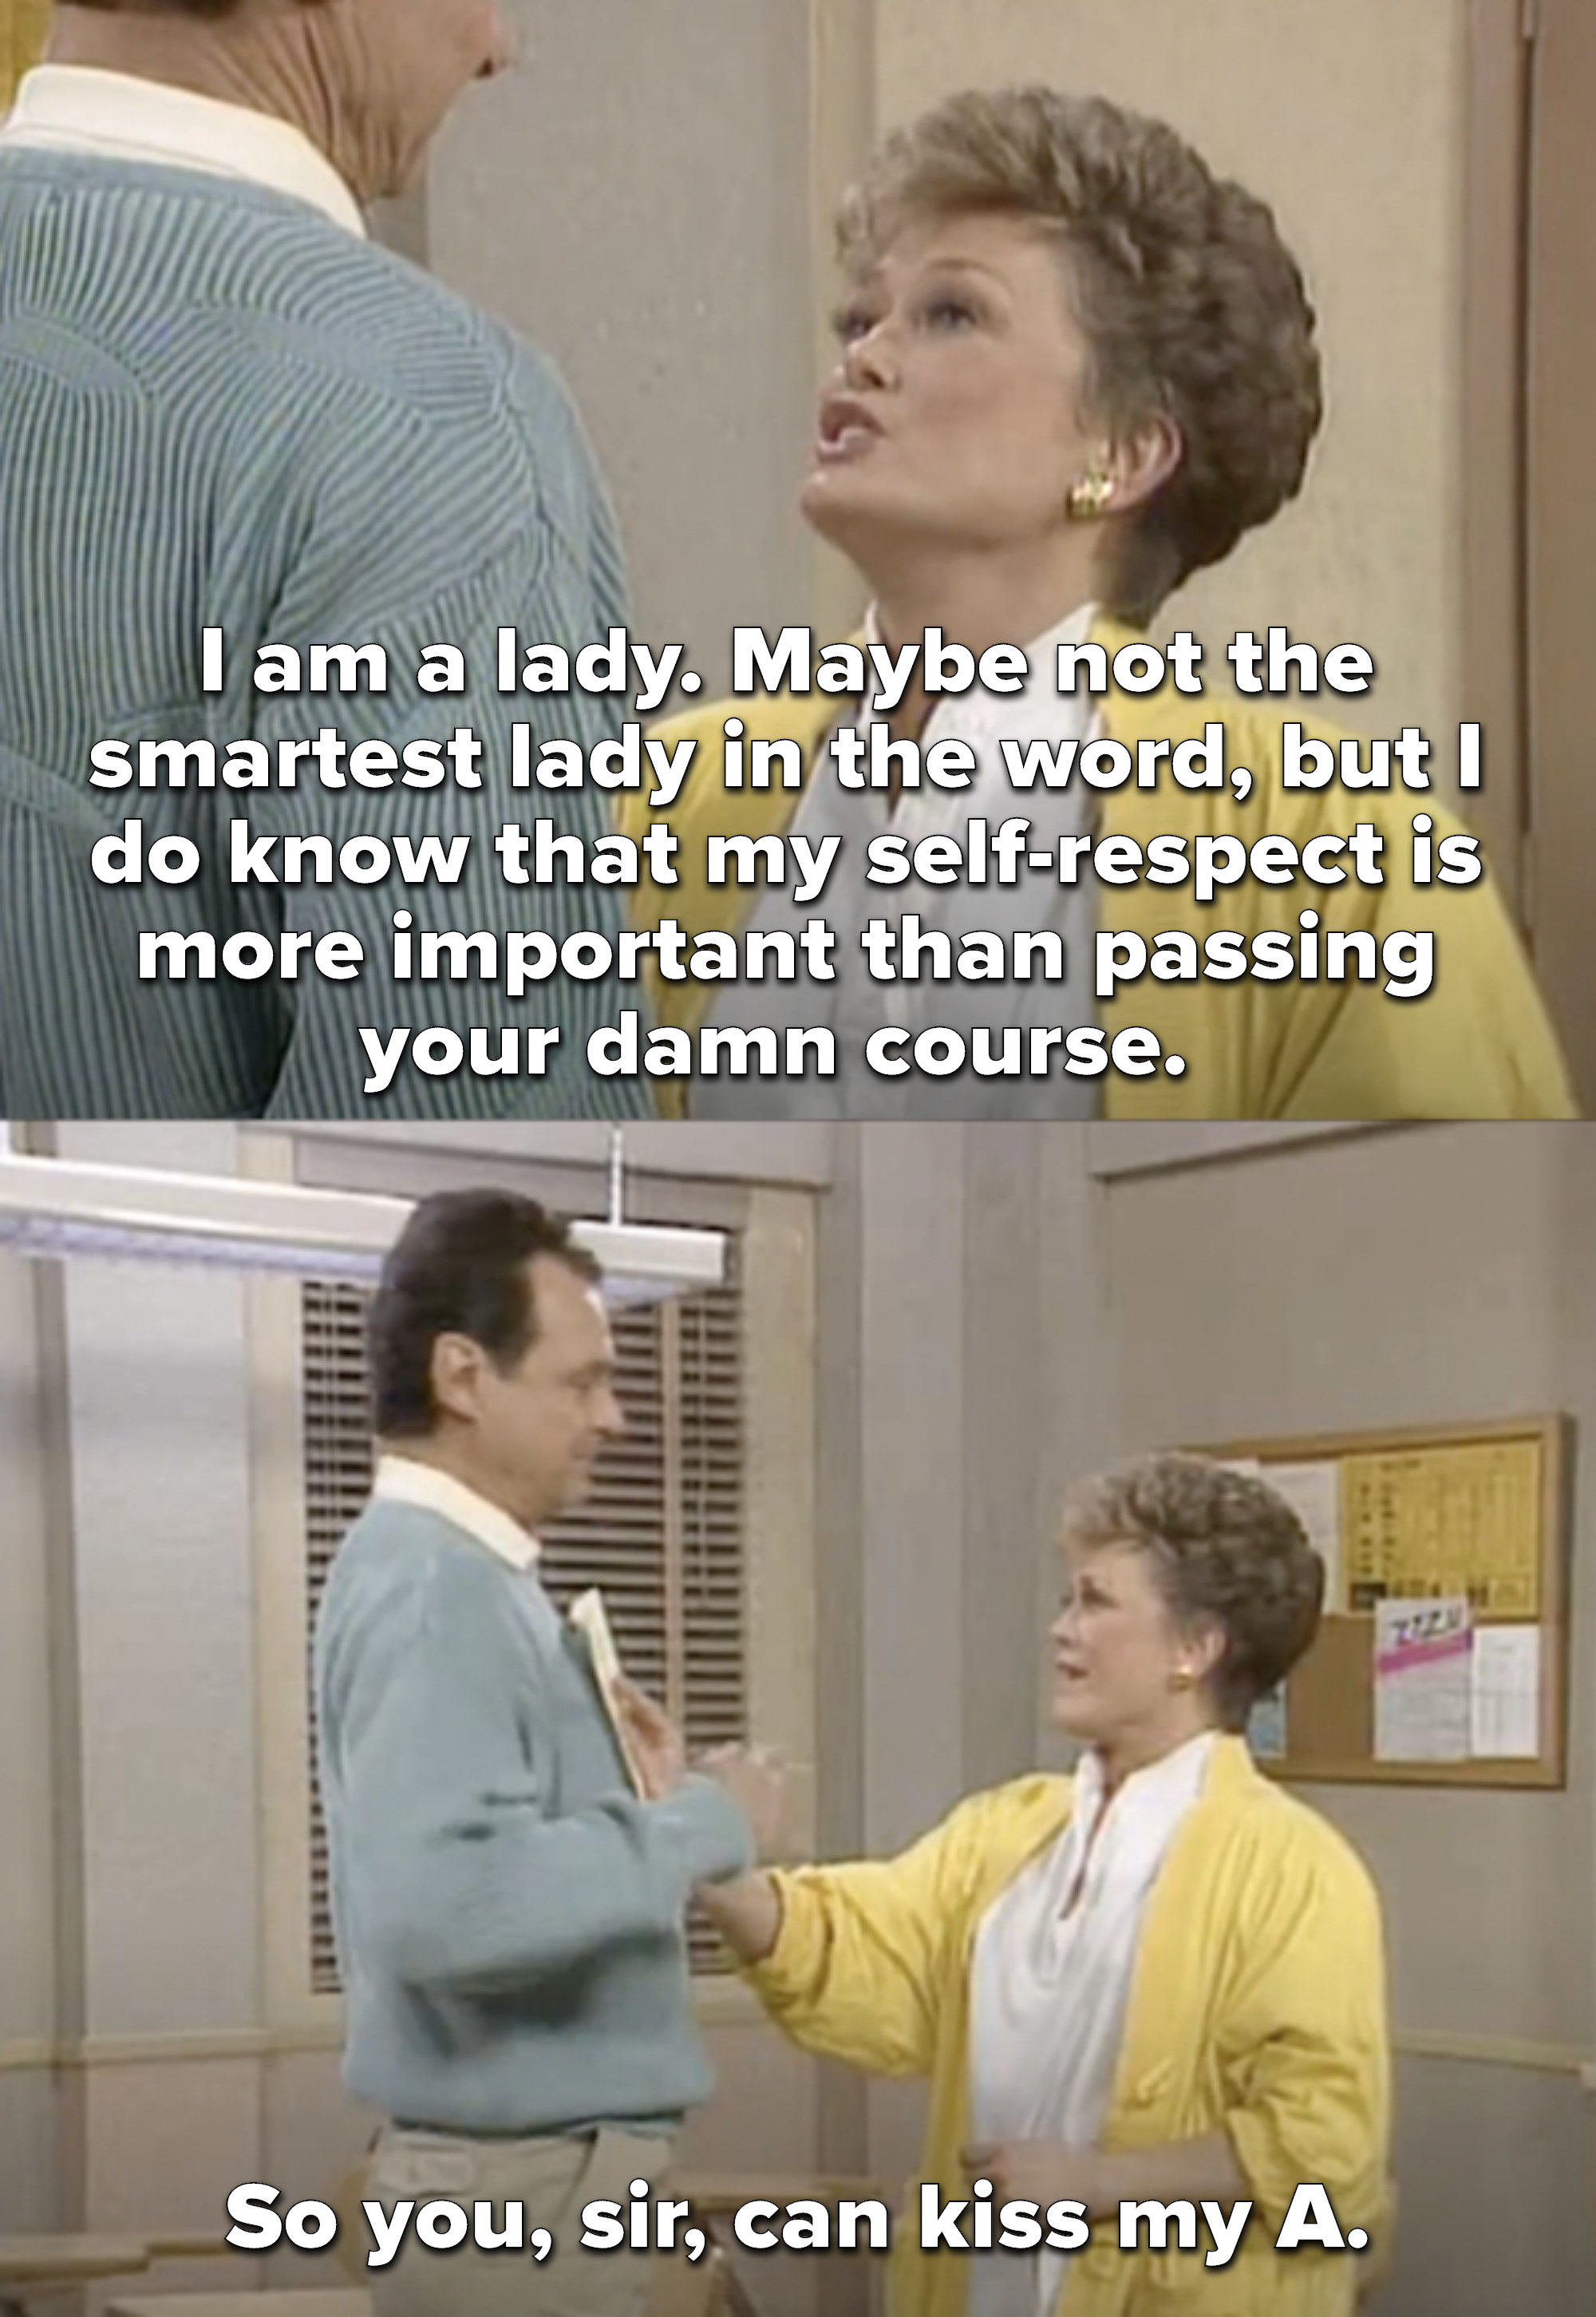 Blanche says she's a lady and her self-worth is more important than passing his course, so he can kiss her A (while slamming her test on him)